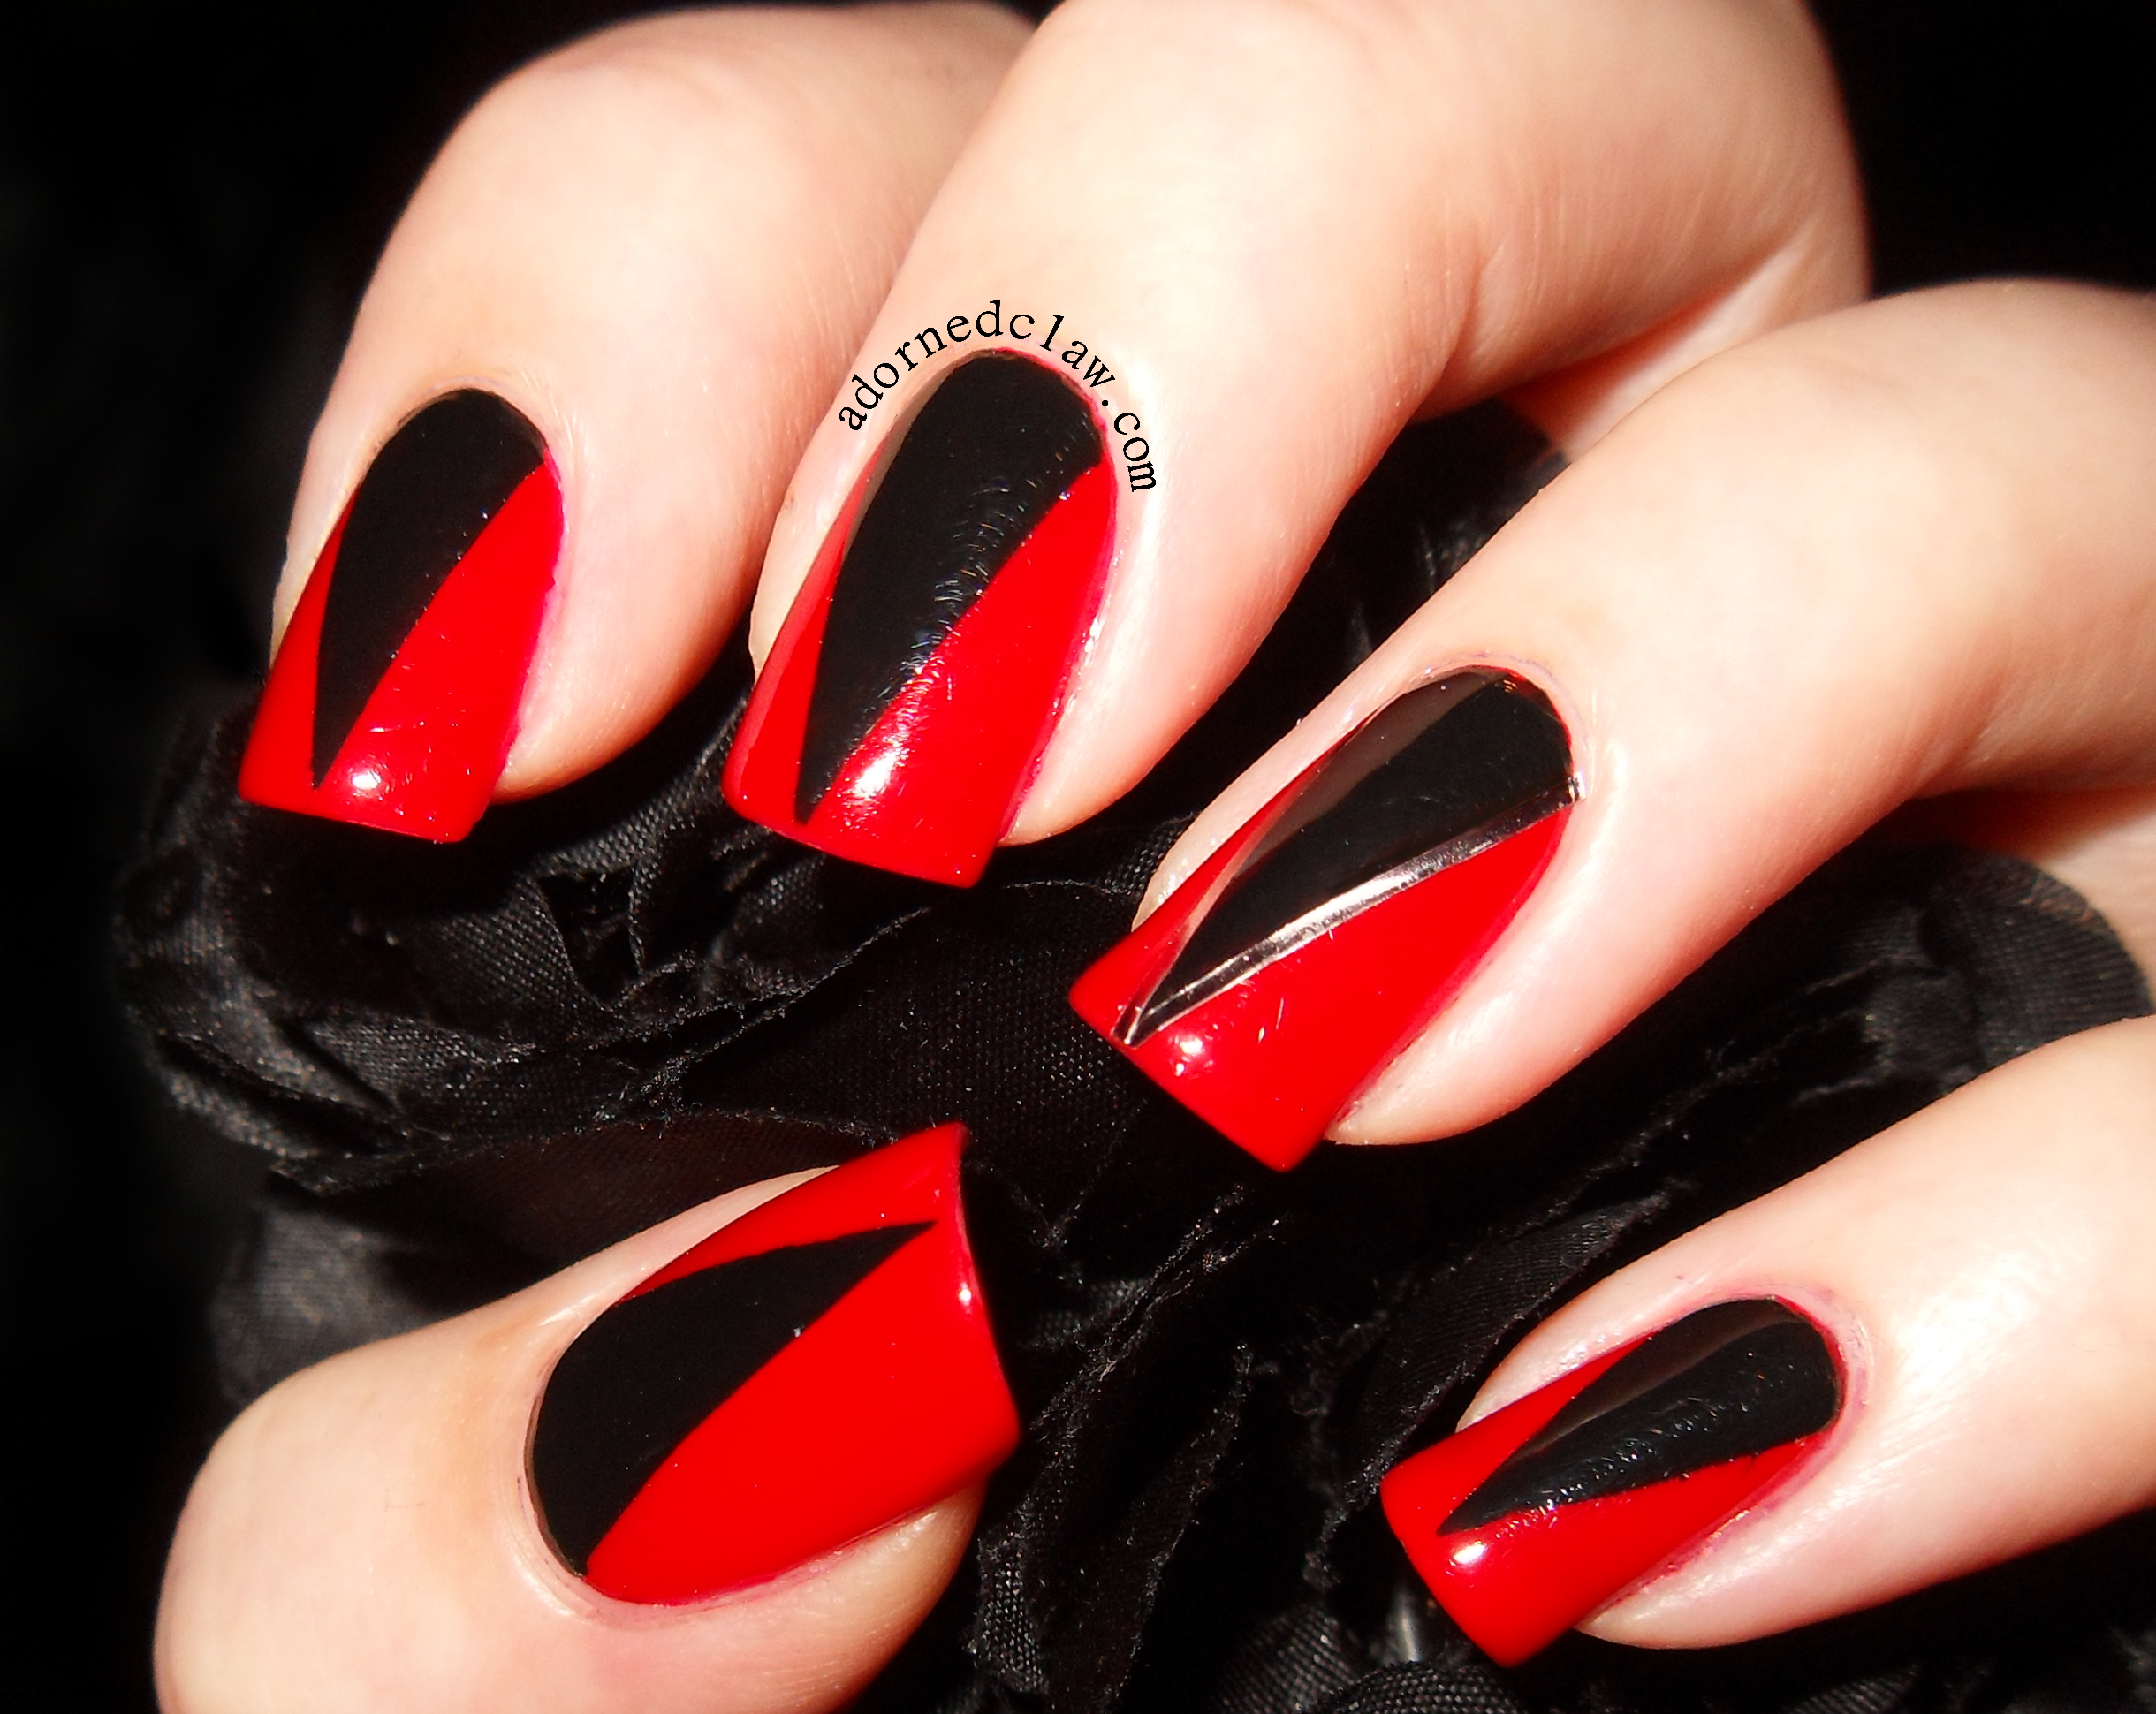 Stiletto Nails With Red Polish And Black Glitter Gel Together With Red